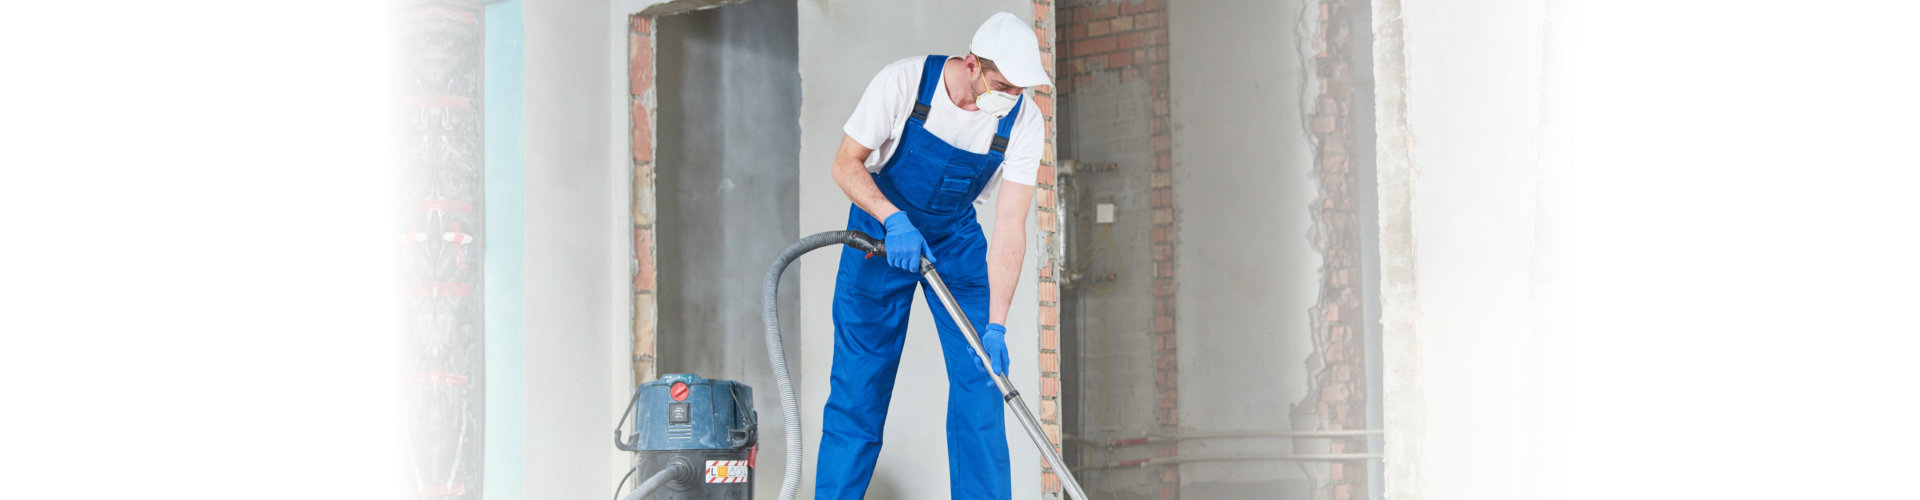 a utility person cleaning the building